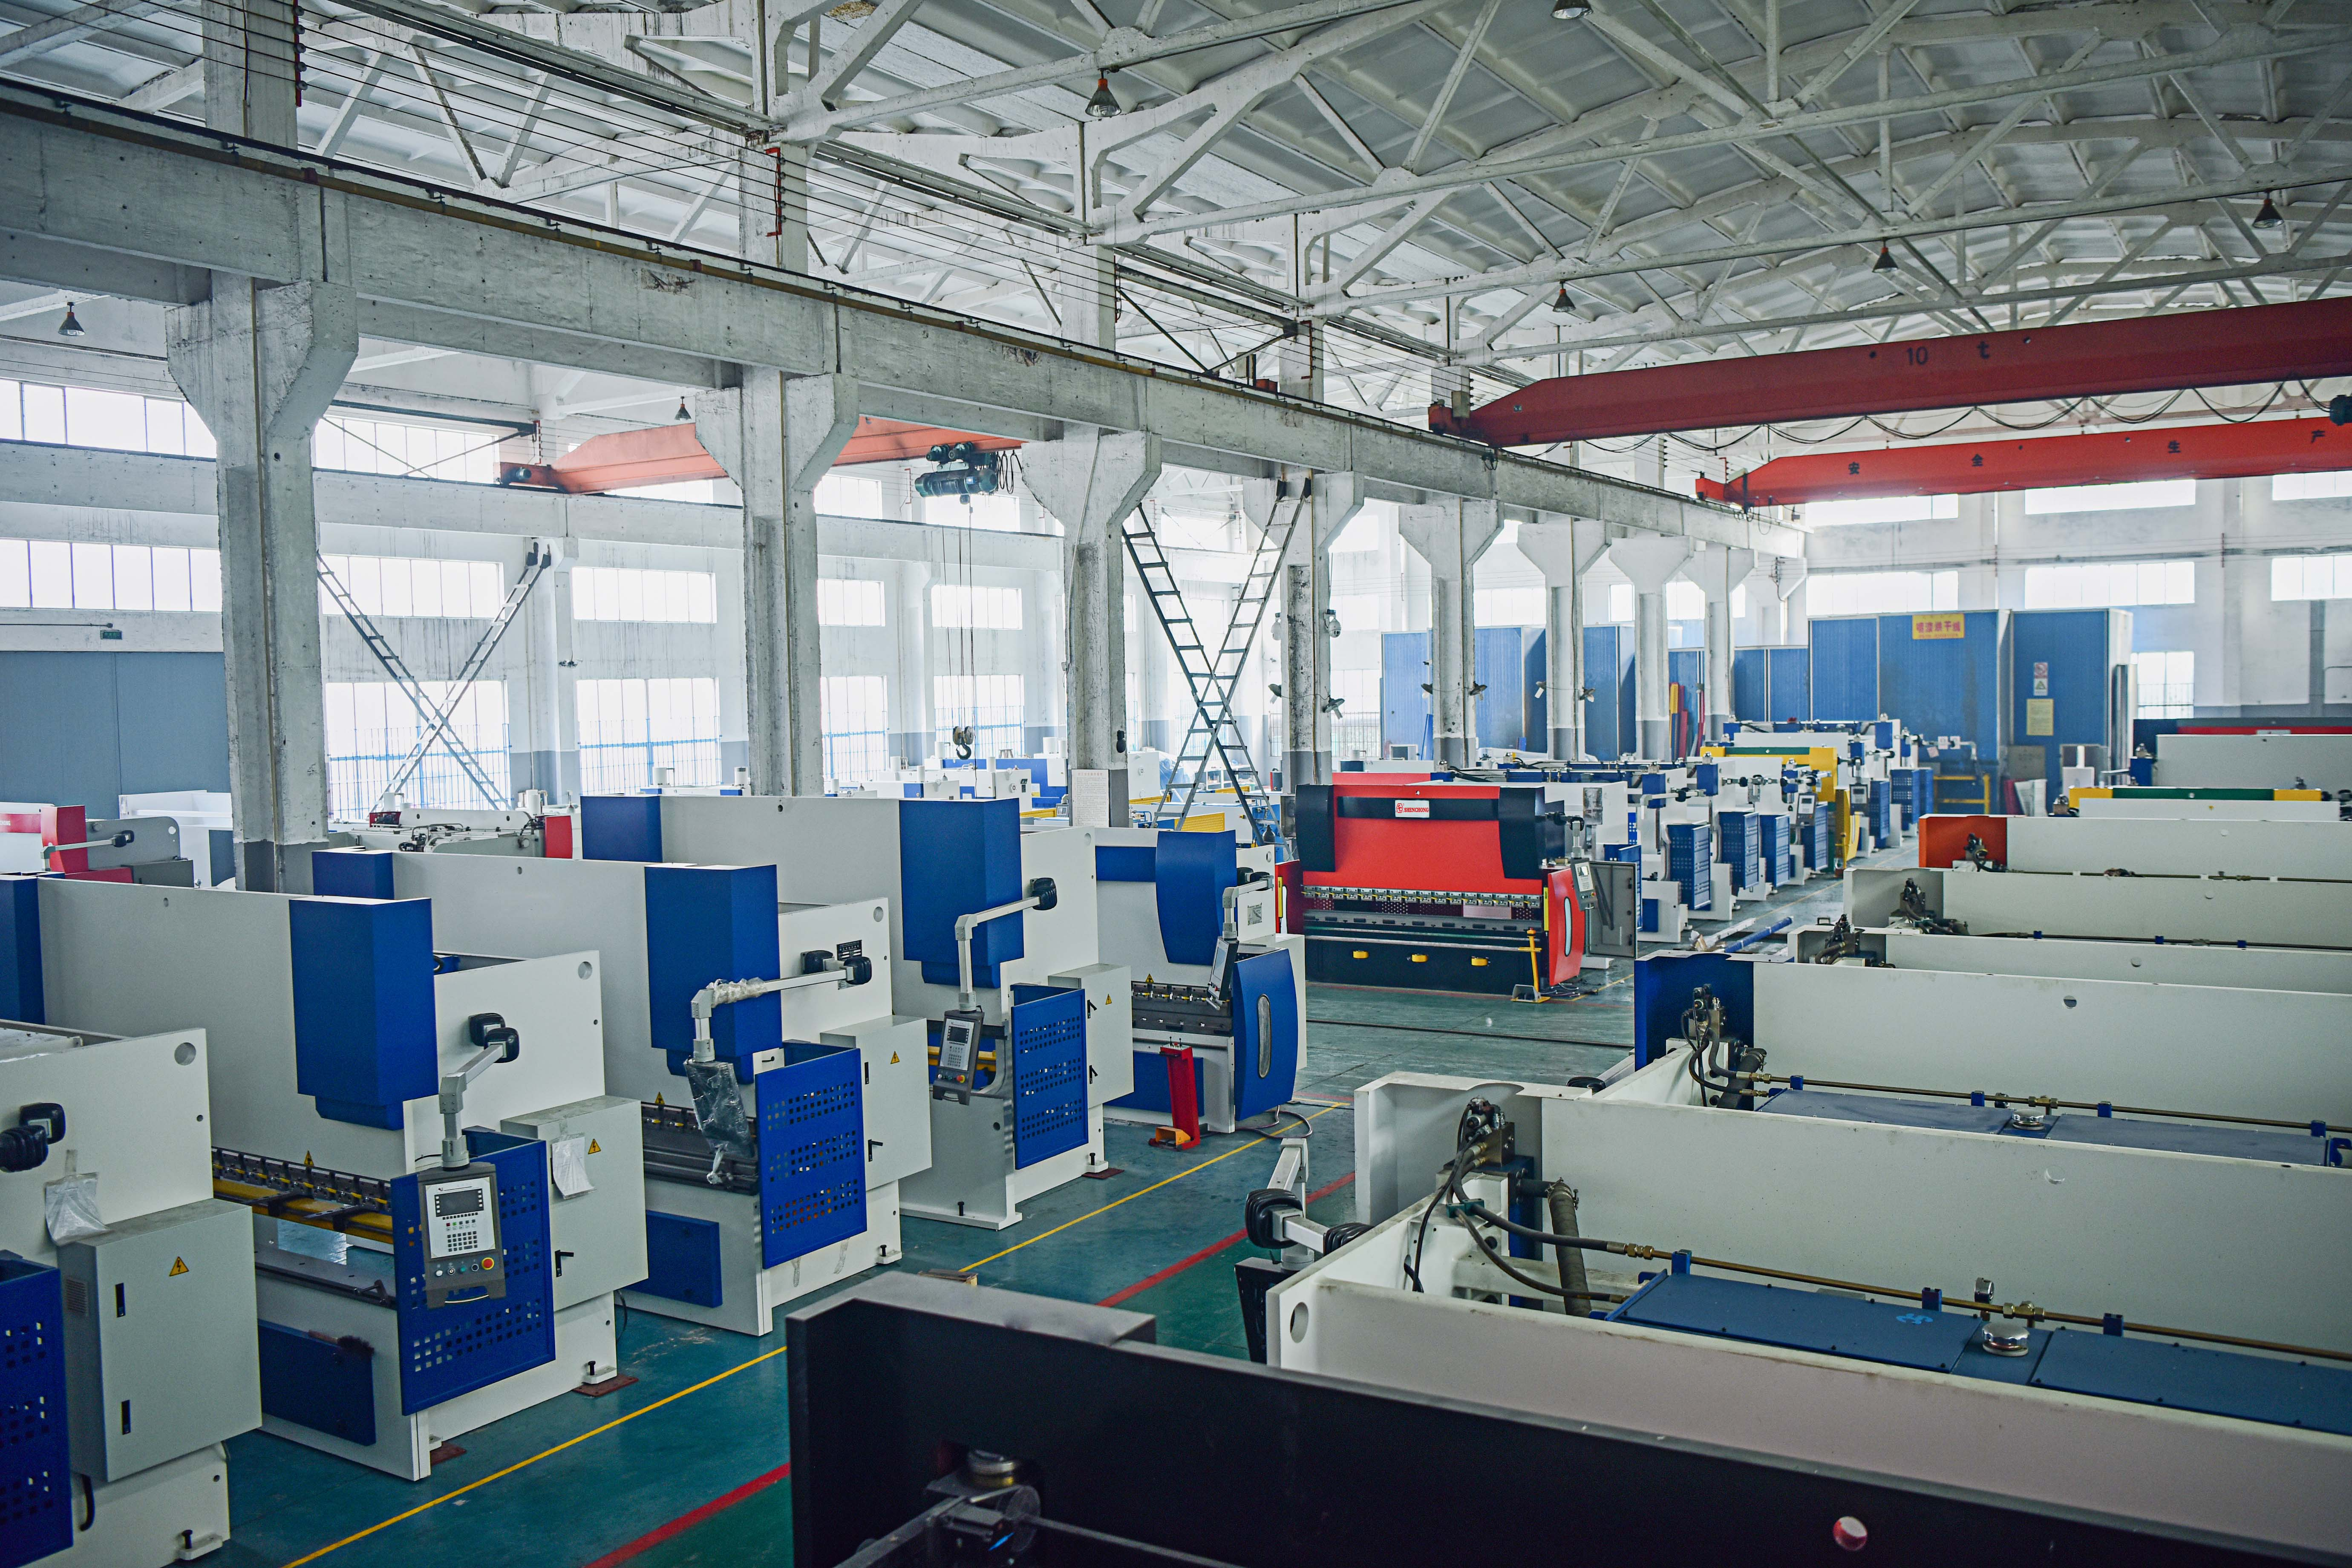 hydraulic bending machines manufacturing factory workshop